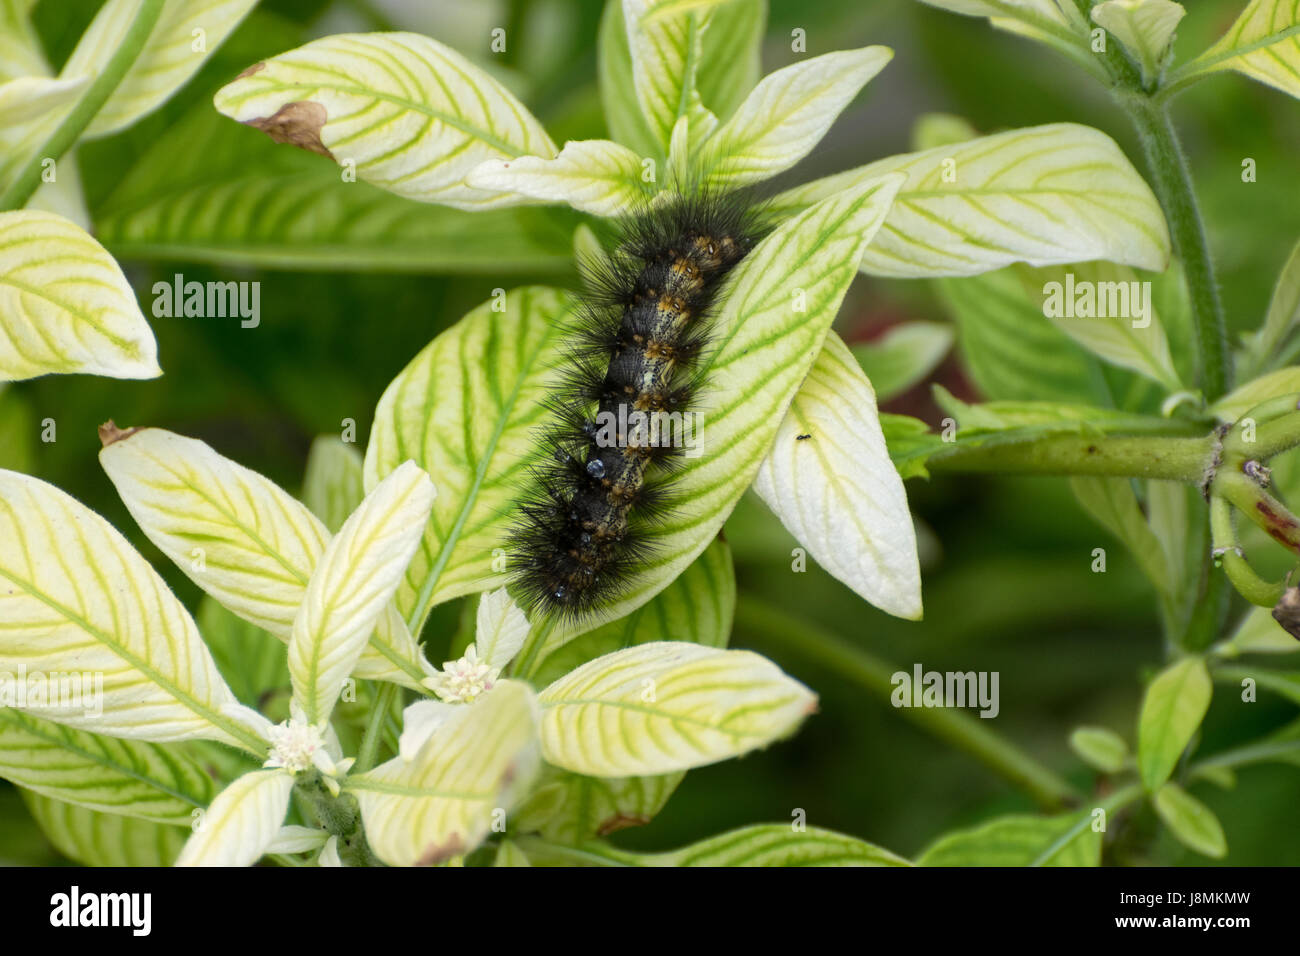 Fuzzy Salt Marsh Moth Caterpillar covered in clusters of spiky, black hairs crawling across a bright green leaf - Stock Image